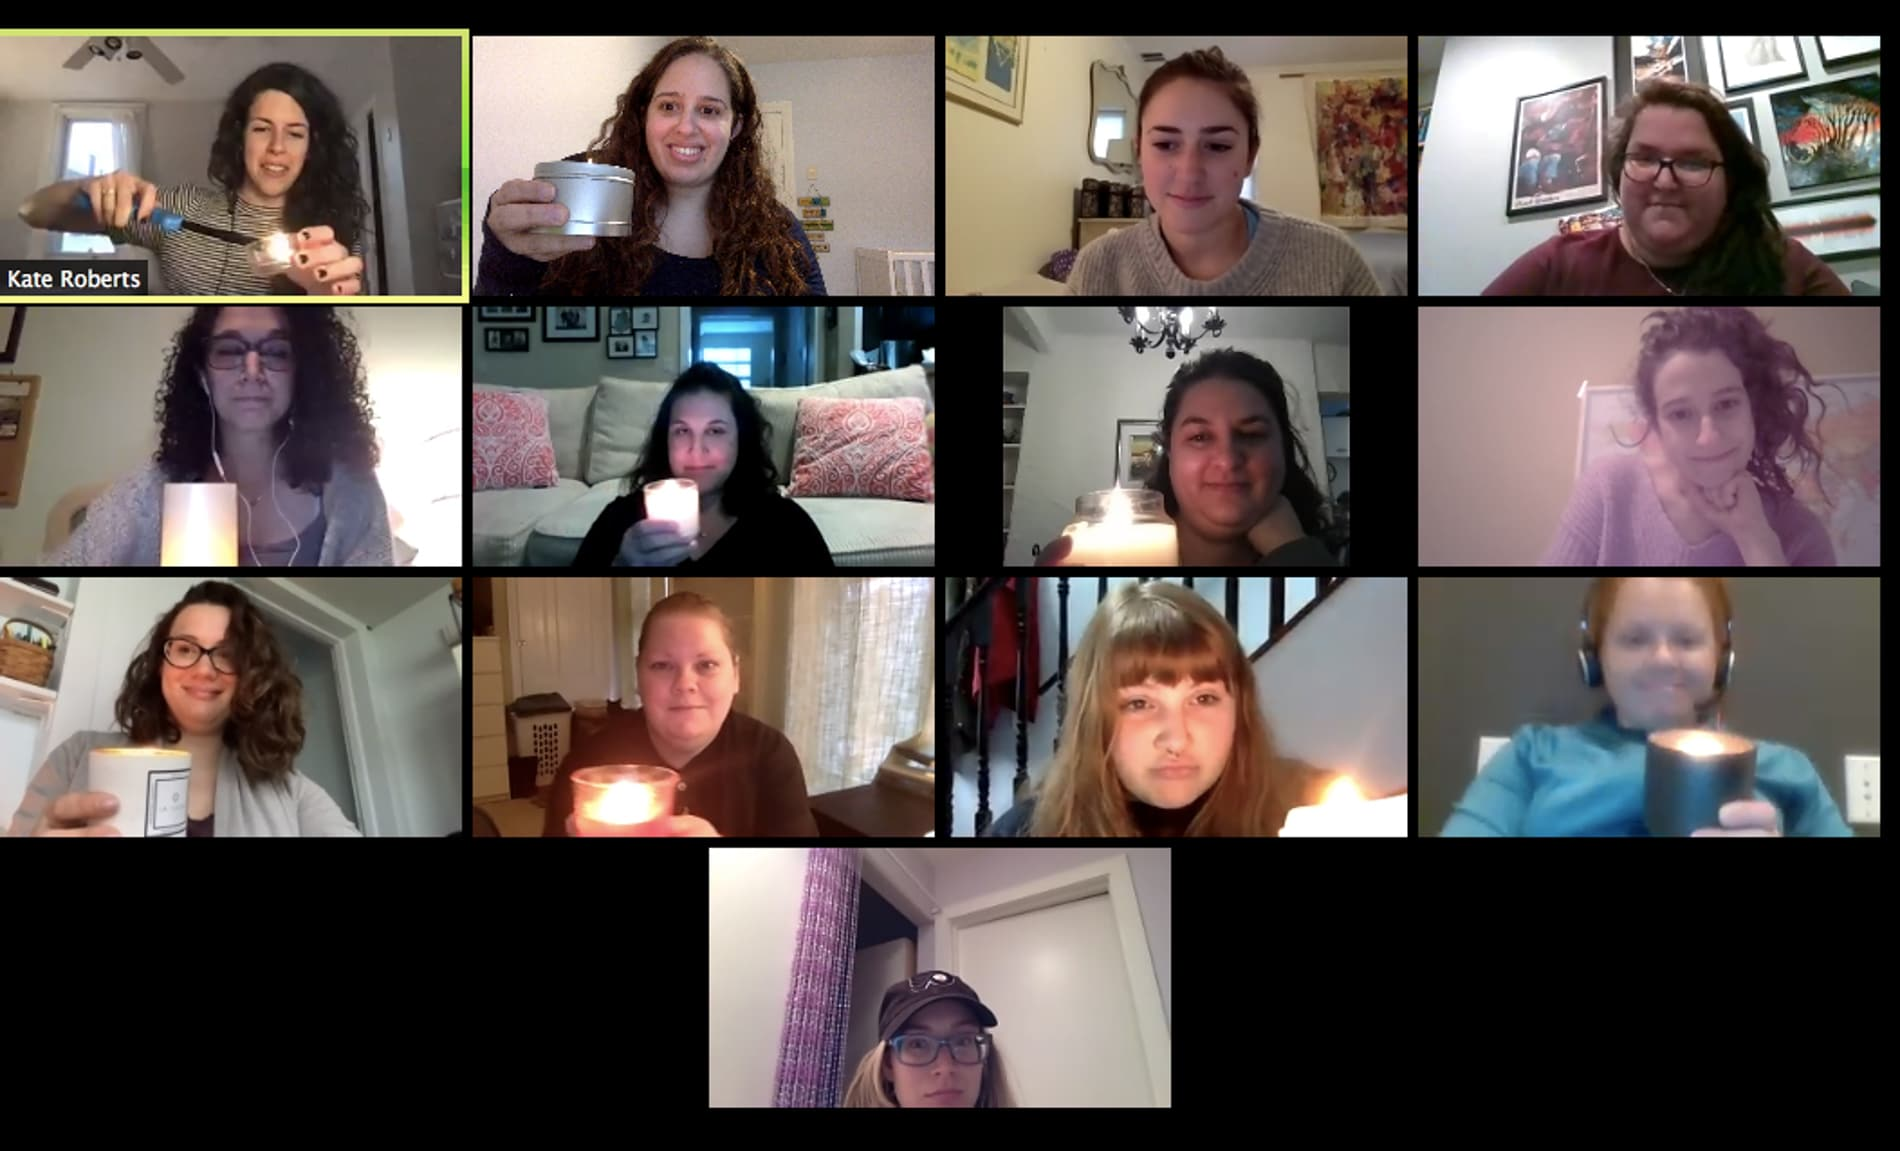 Tribe 12 Repair The World's monthly Womxn's Moon Circle goes virtual - ritual candle lighting to honor our ancestor